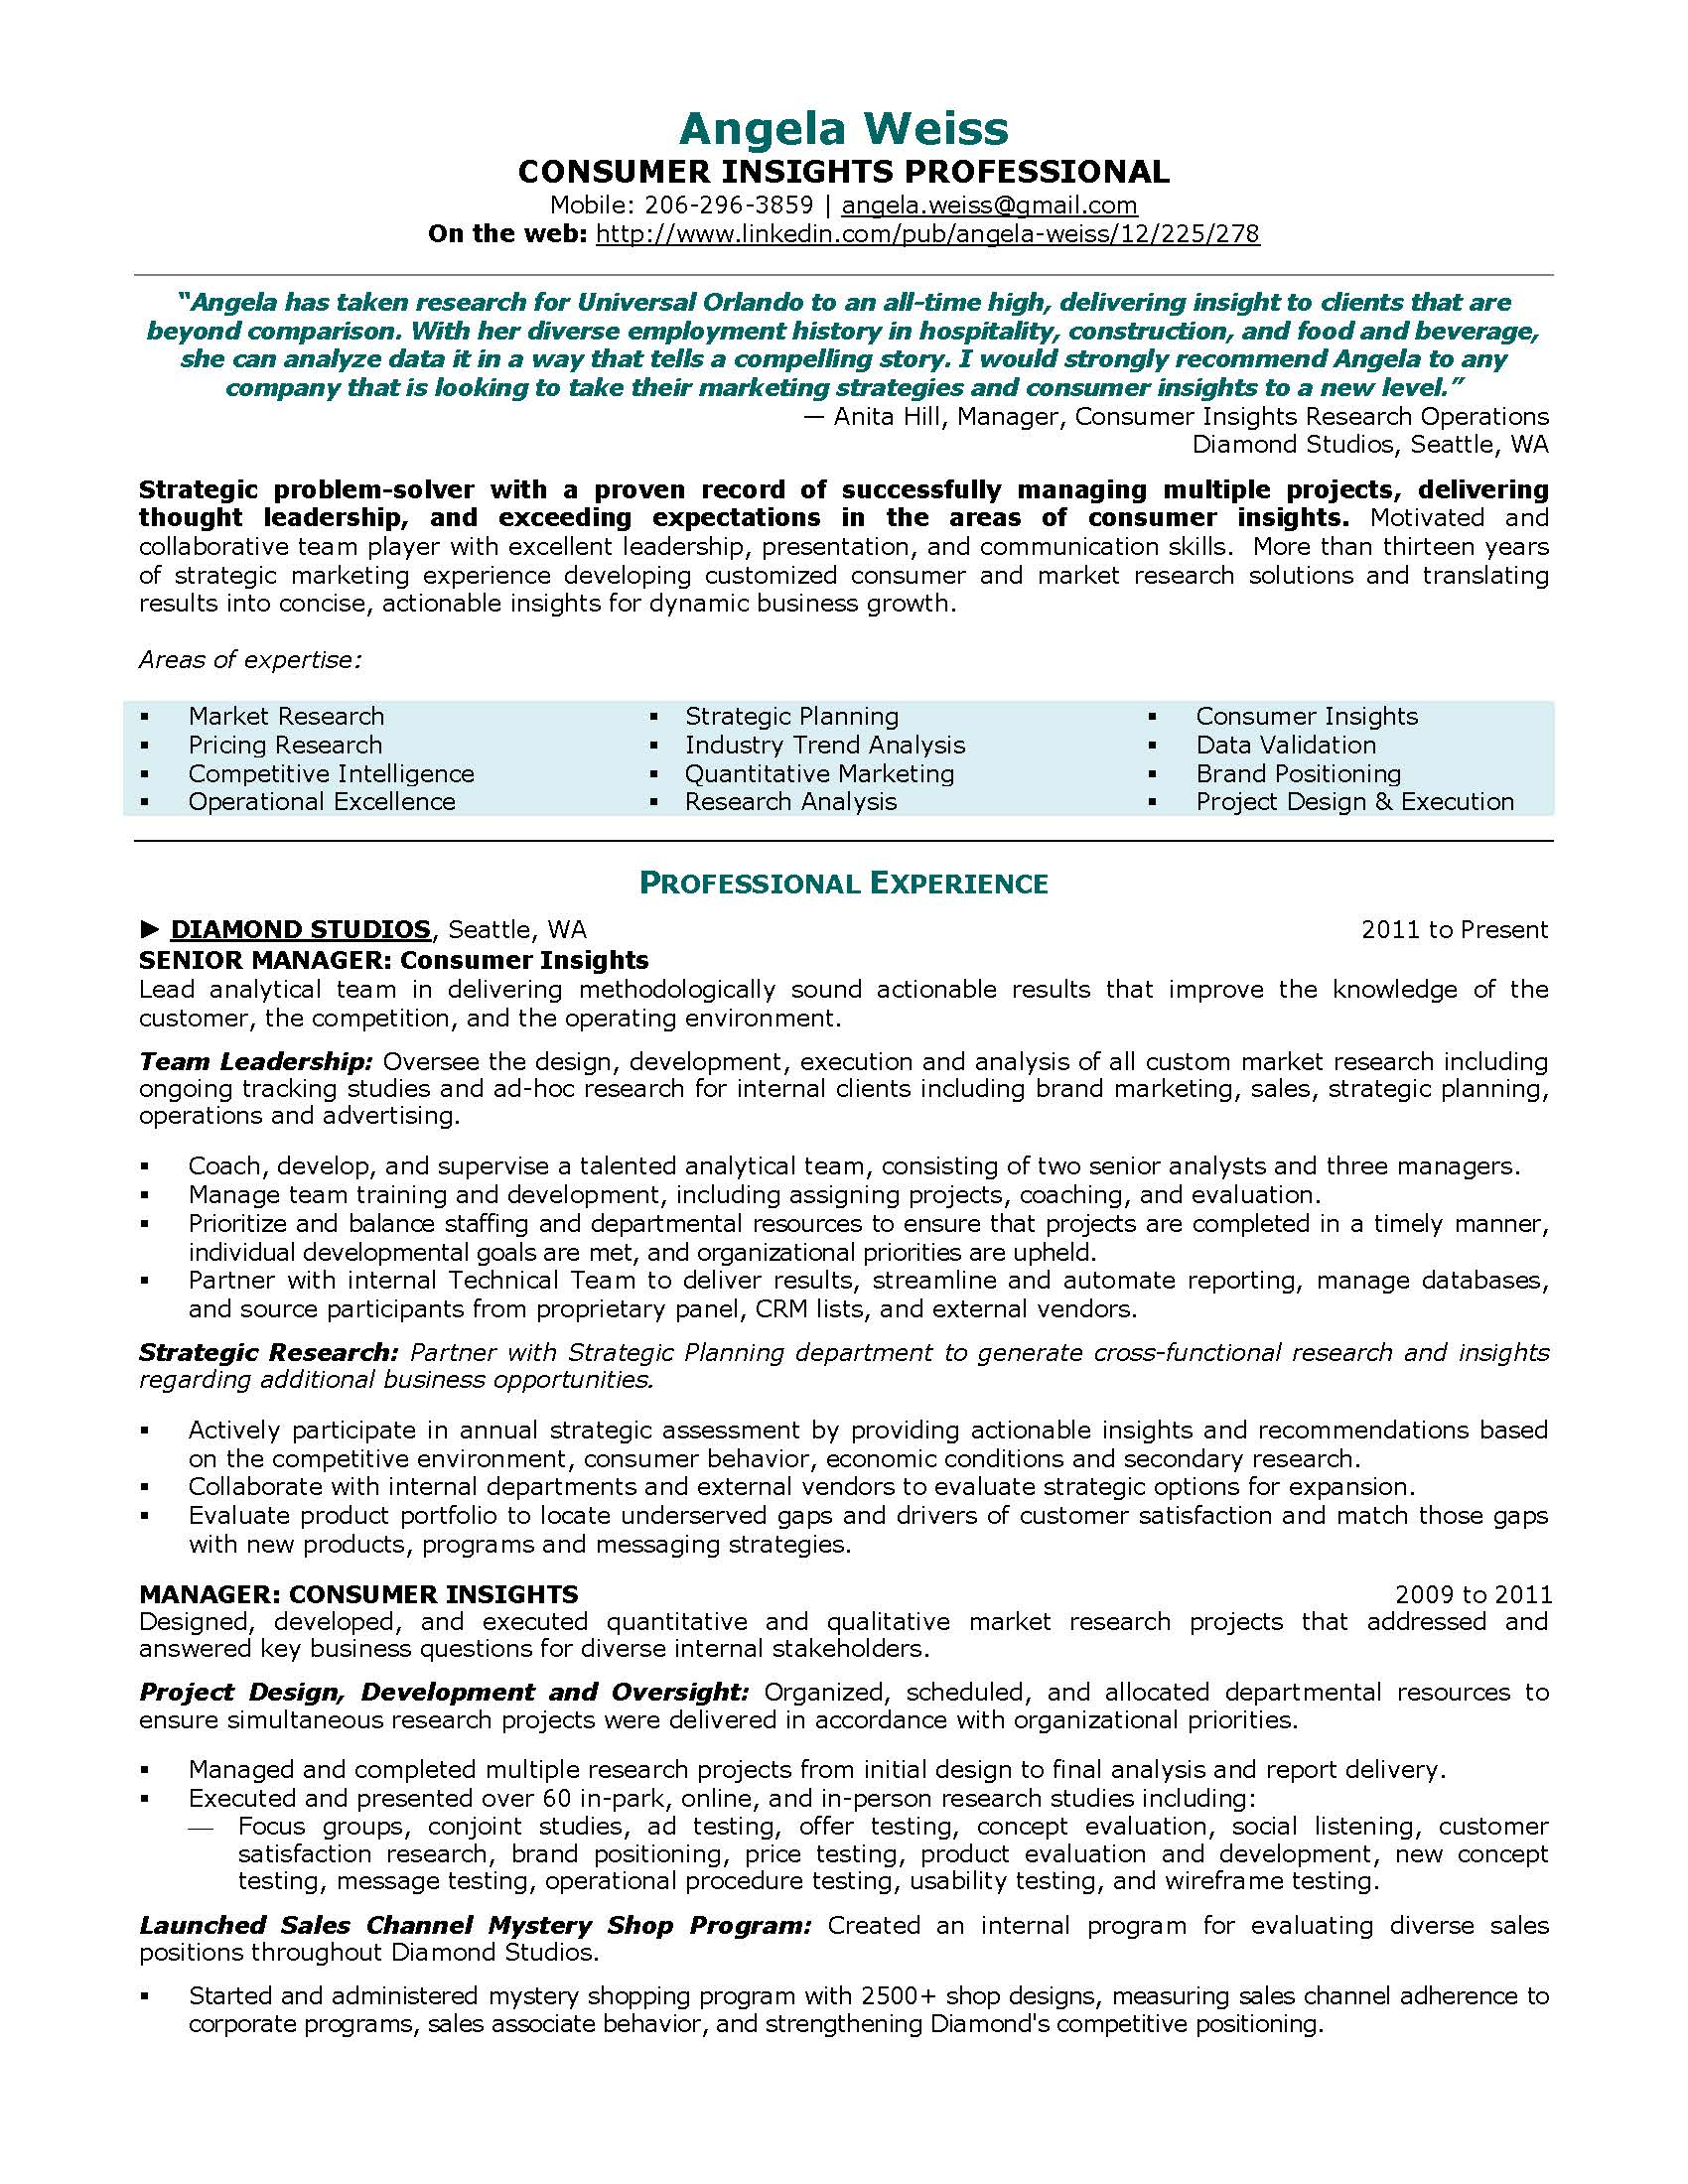 consumer insights resume sample, provided by Elite Resume Writing Services